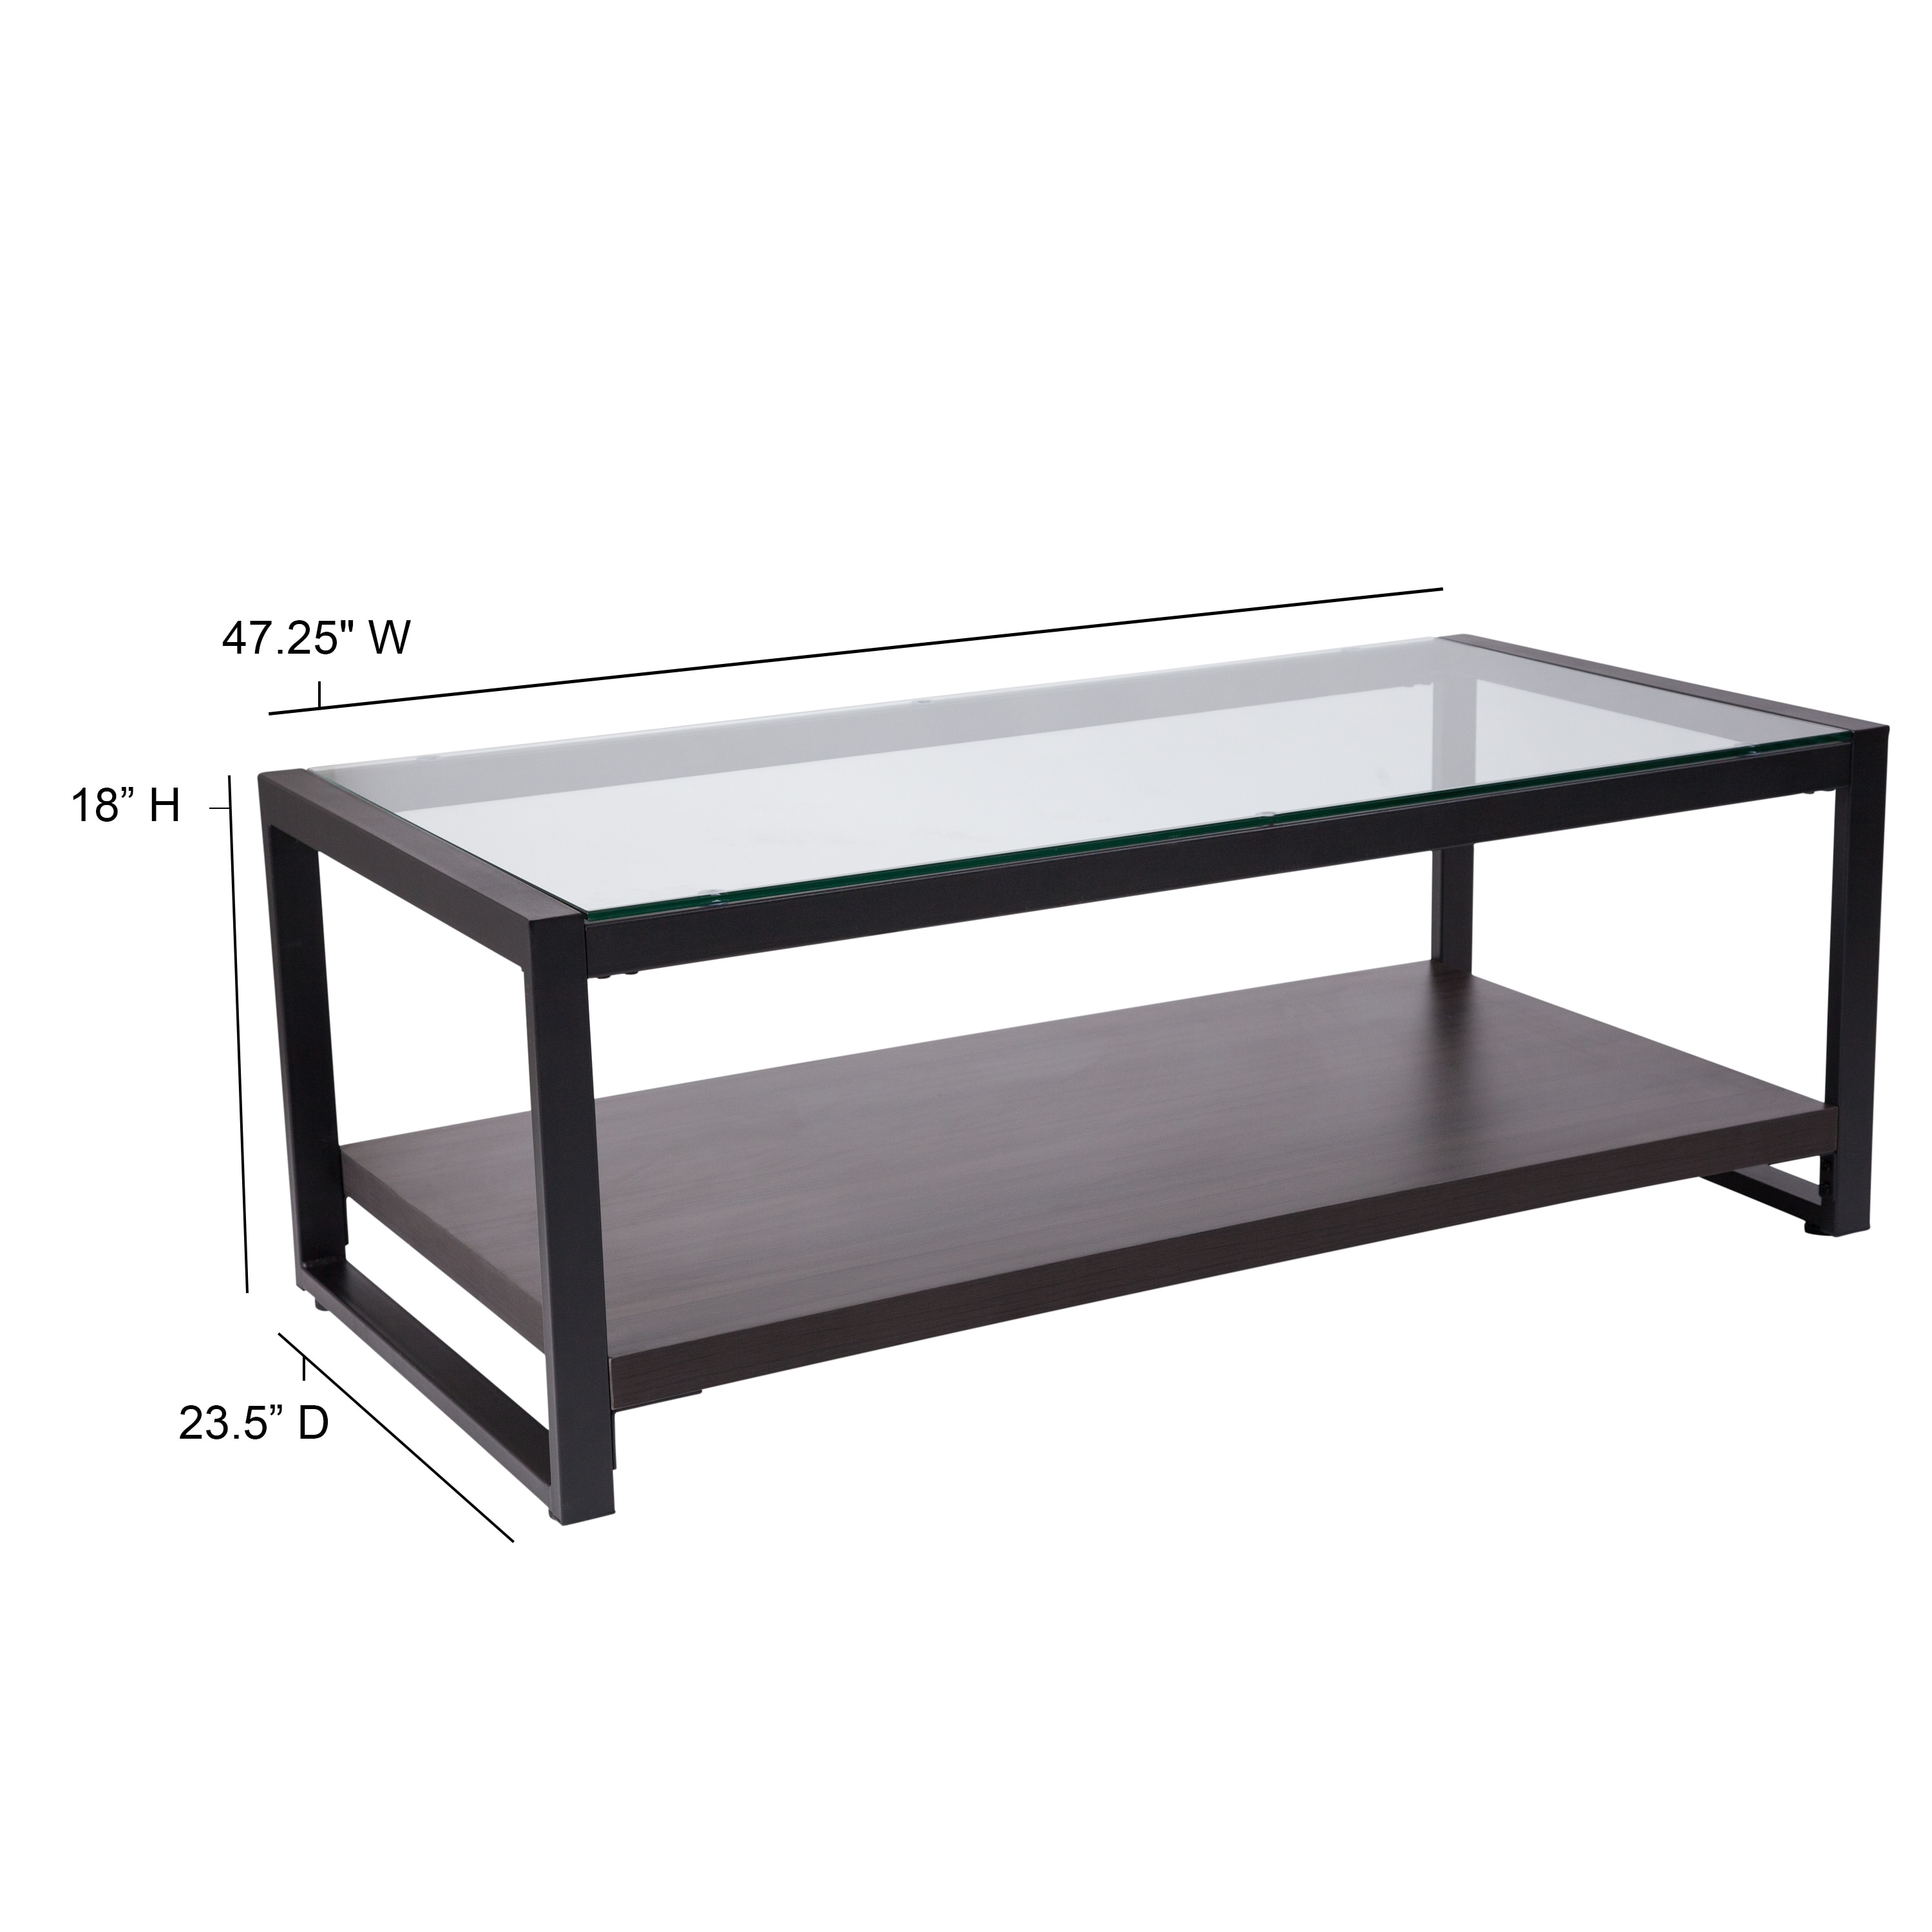 Shop Glass Coffee Table With Wood Grain Raised Shelf And Metal Frame Overstock 27976198